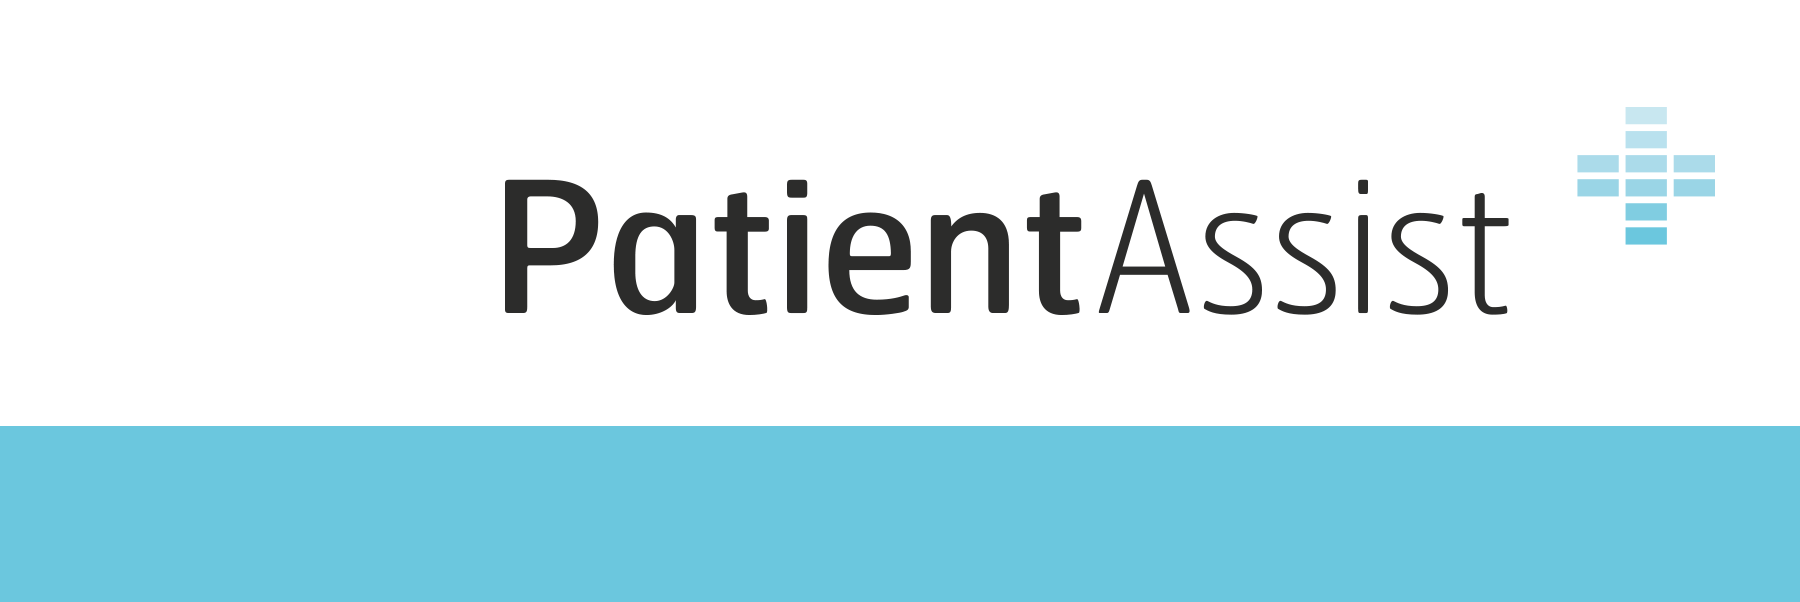 Patient Assist Logo